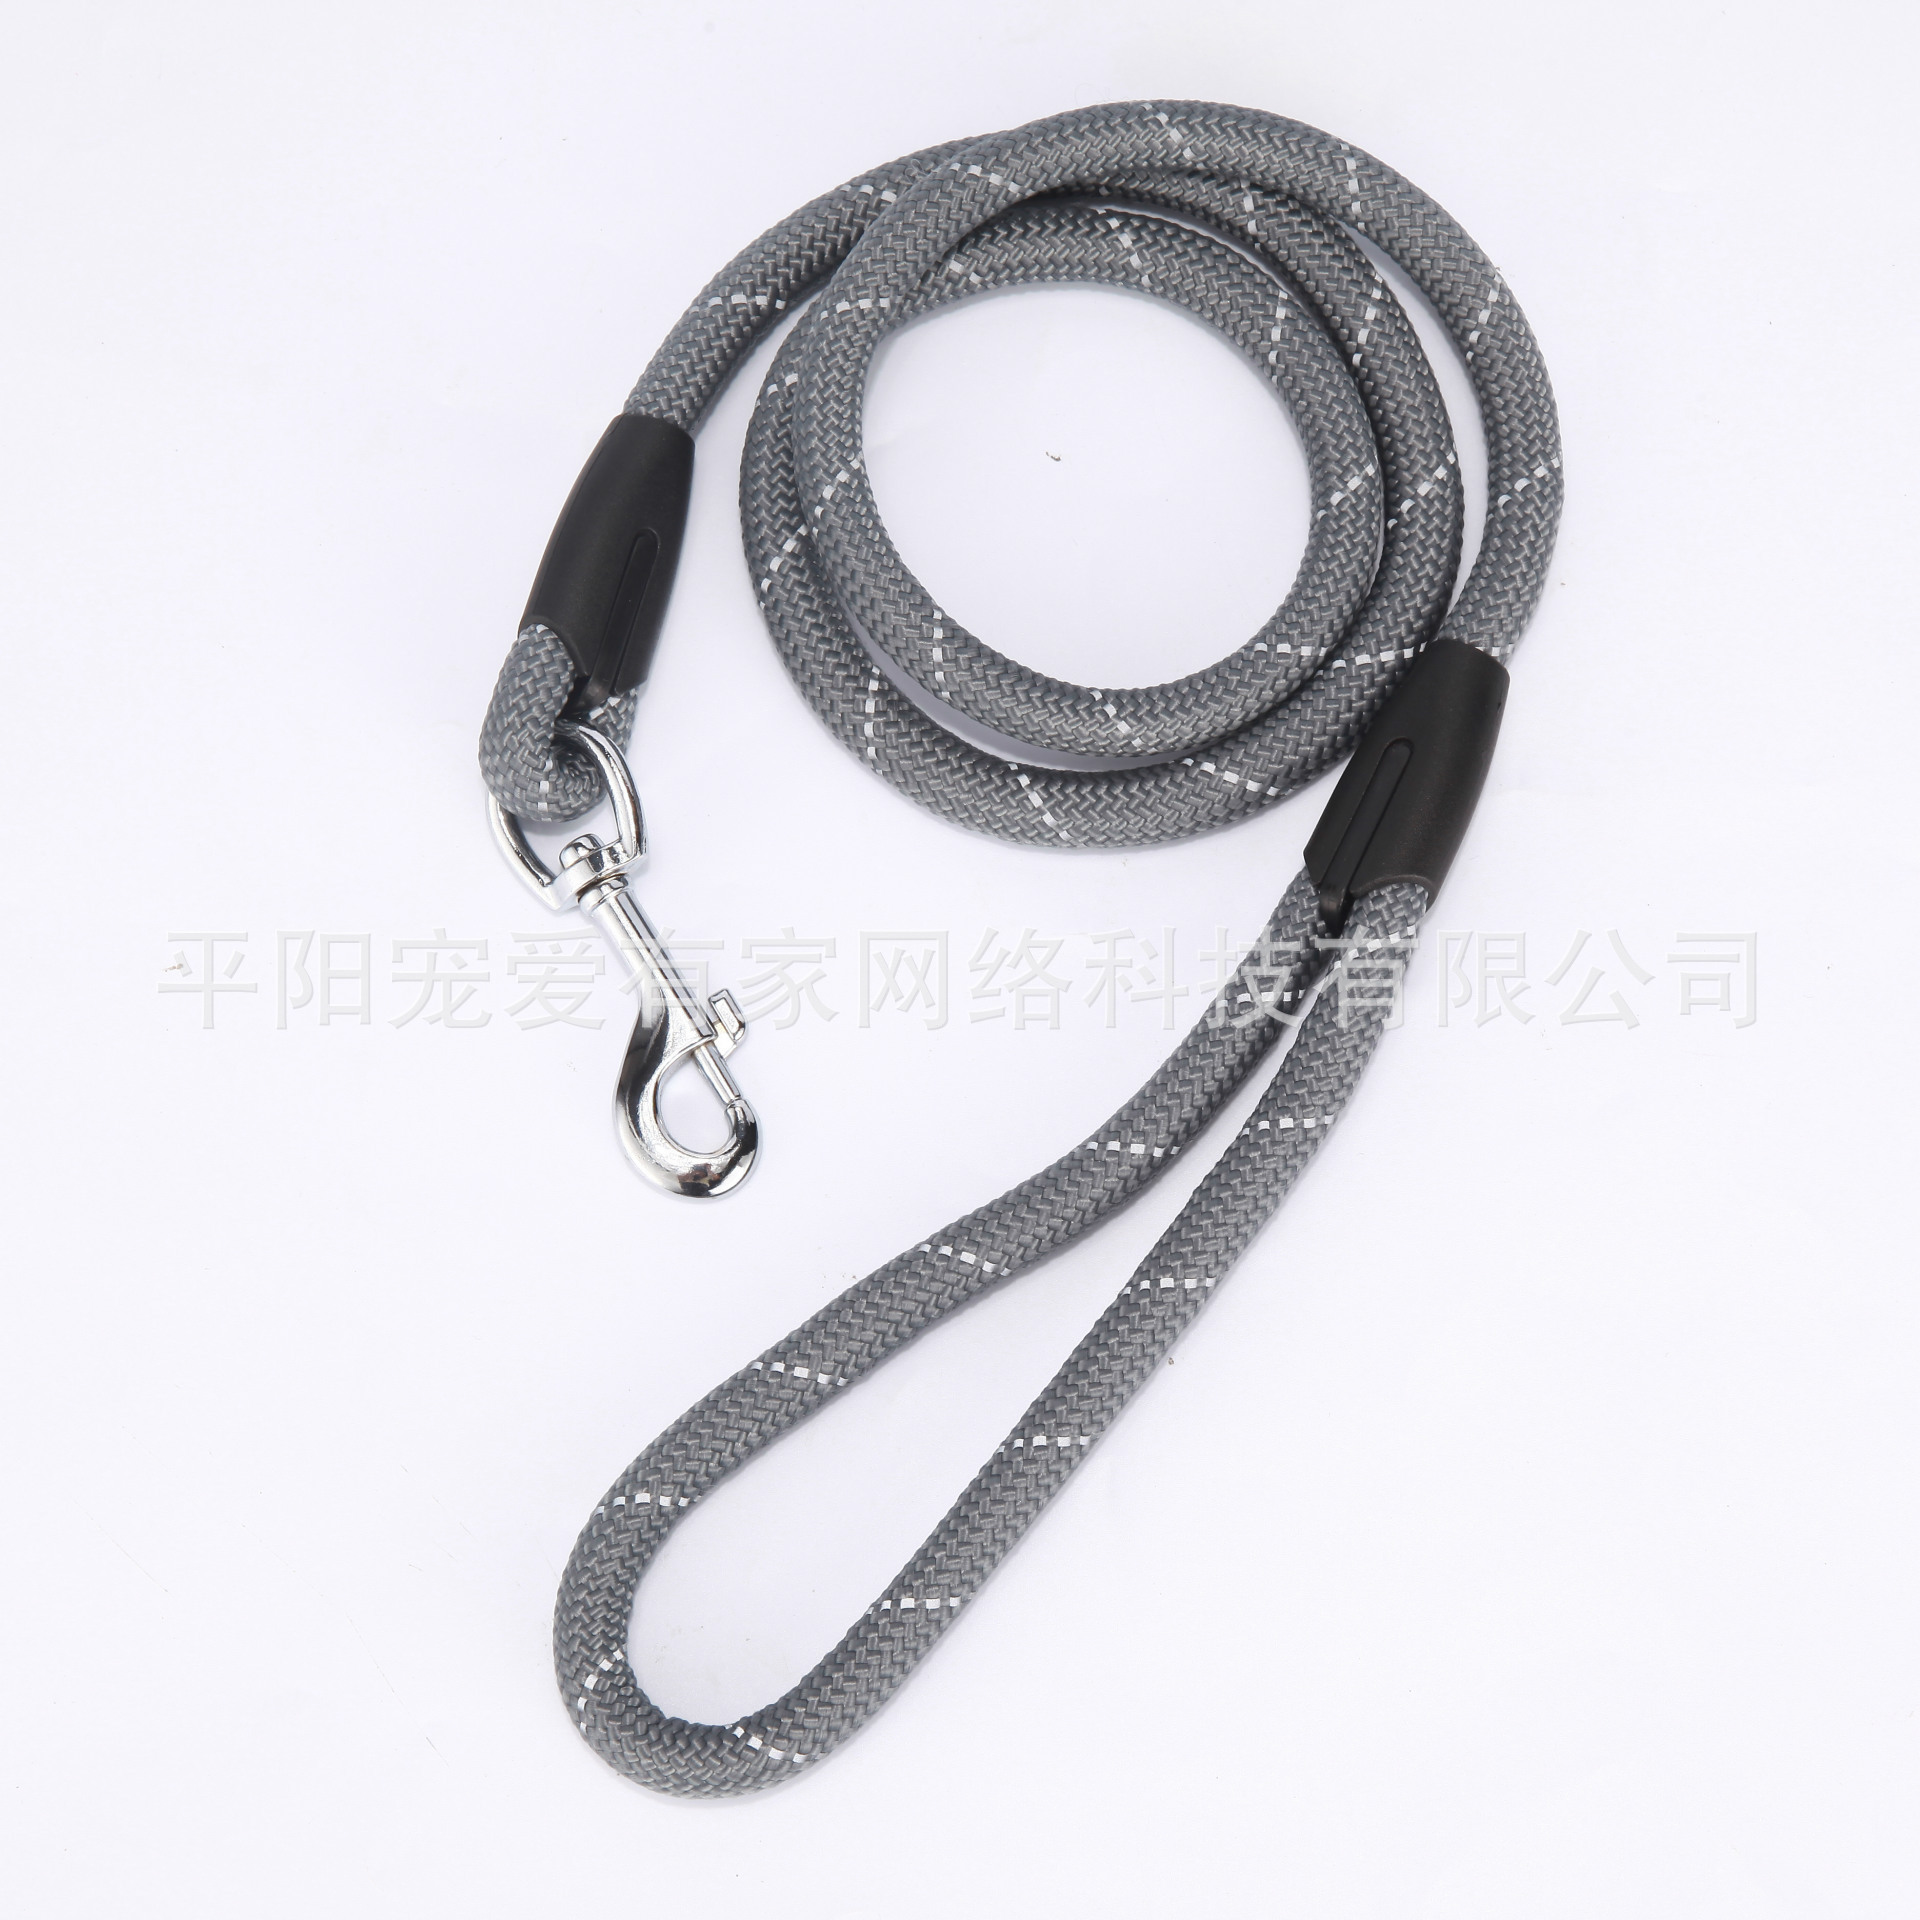 Reflective Yarn Single Round Rope Medium Large Dog Hand Holding Rope Pet Supplies Outdoor Training